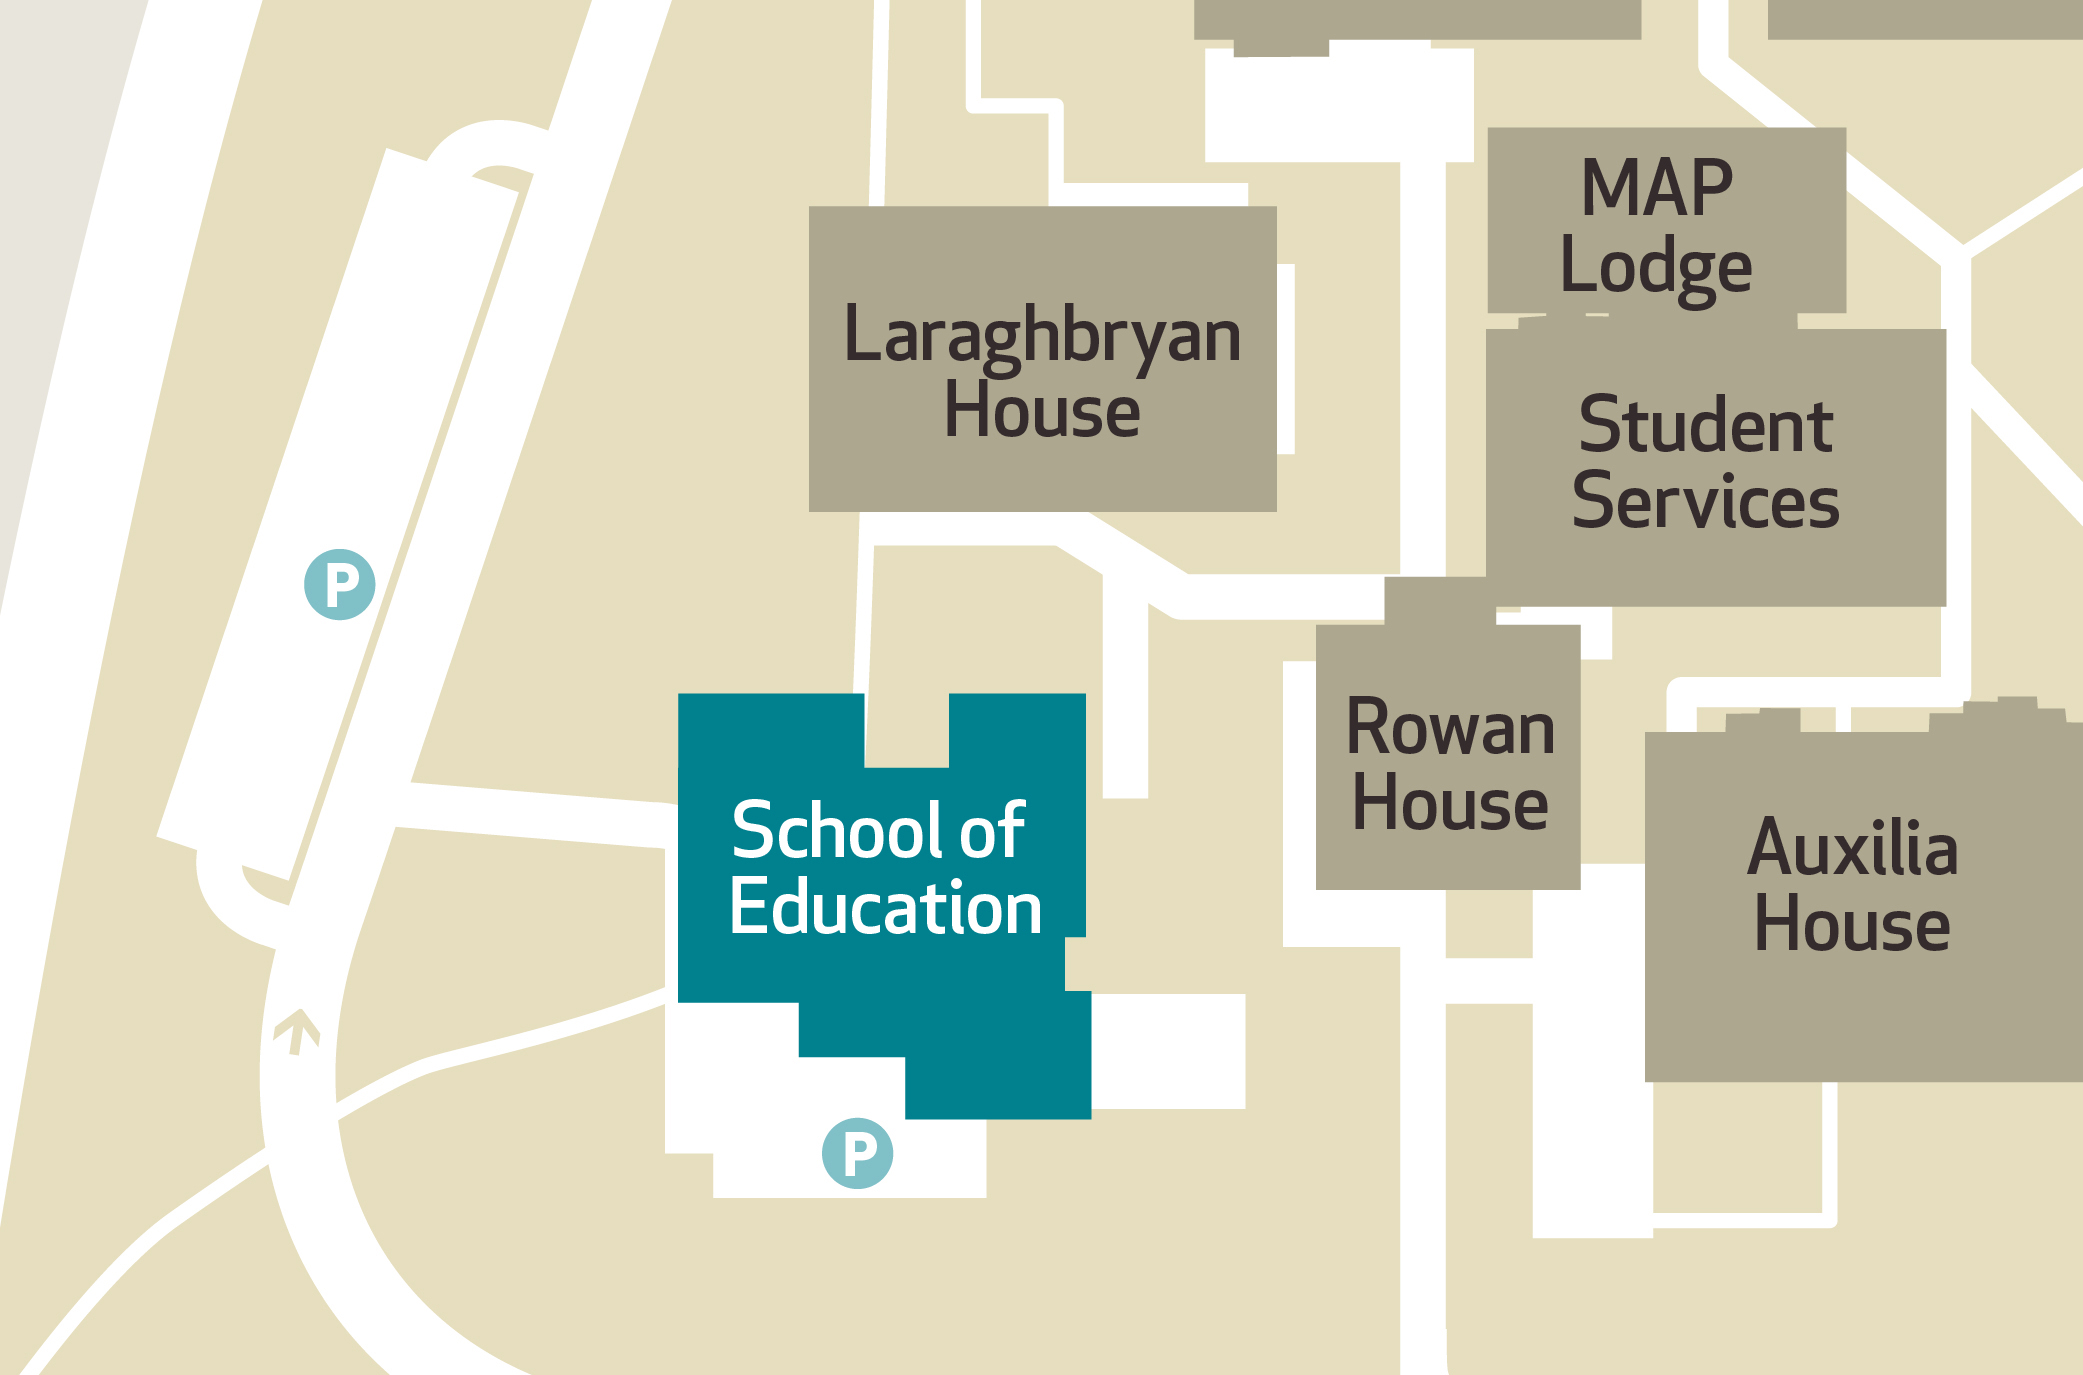 School of Education - Maps